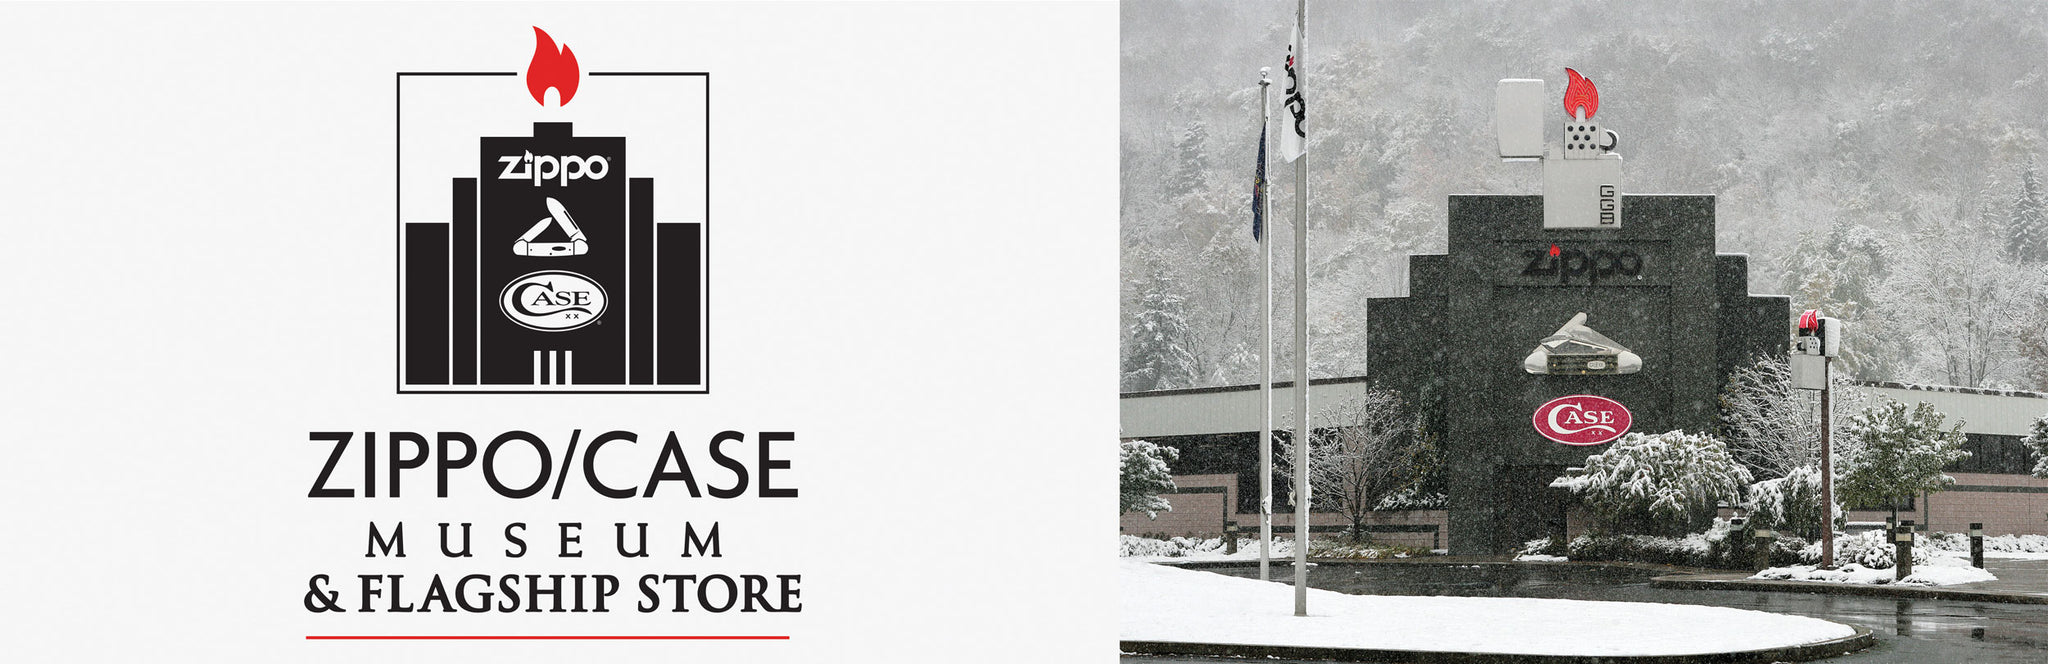 Zippo/Case Museum and Flagship Store logo and Photo of building